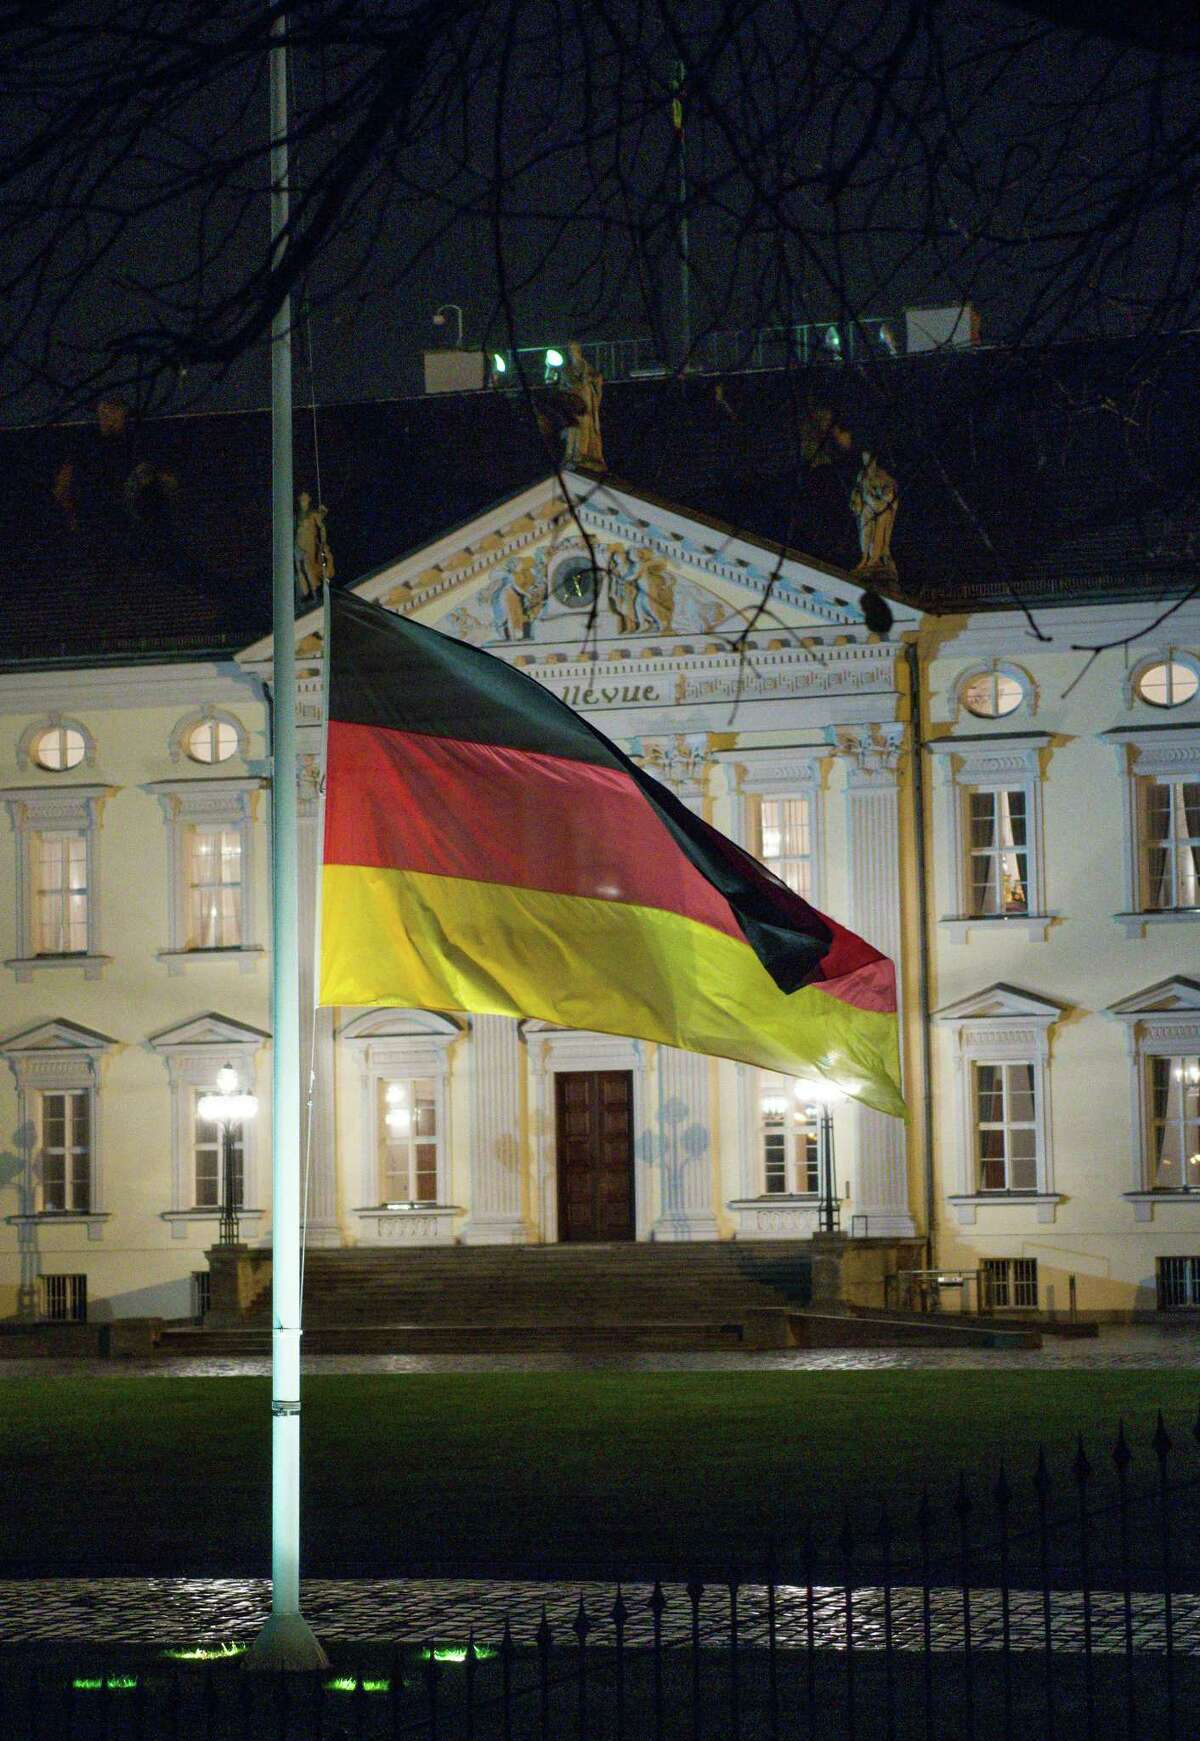 The German flag flies at half-mast in respect for former German chancellor Helmut Schmidt, outside Bellevue palace, the official residence of the German president, in Berlin, Germany, Tuesday, Nov. 10, 2015. Schmidt died Tuesday at the age of 96.